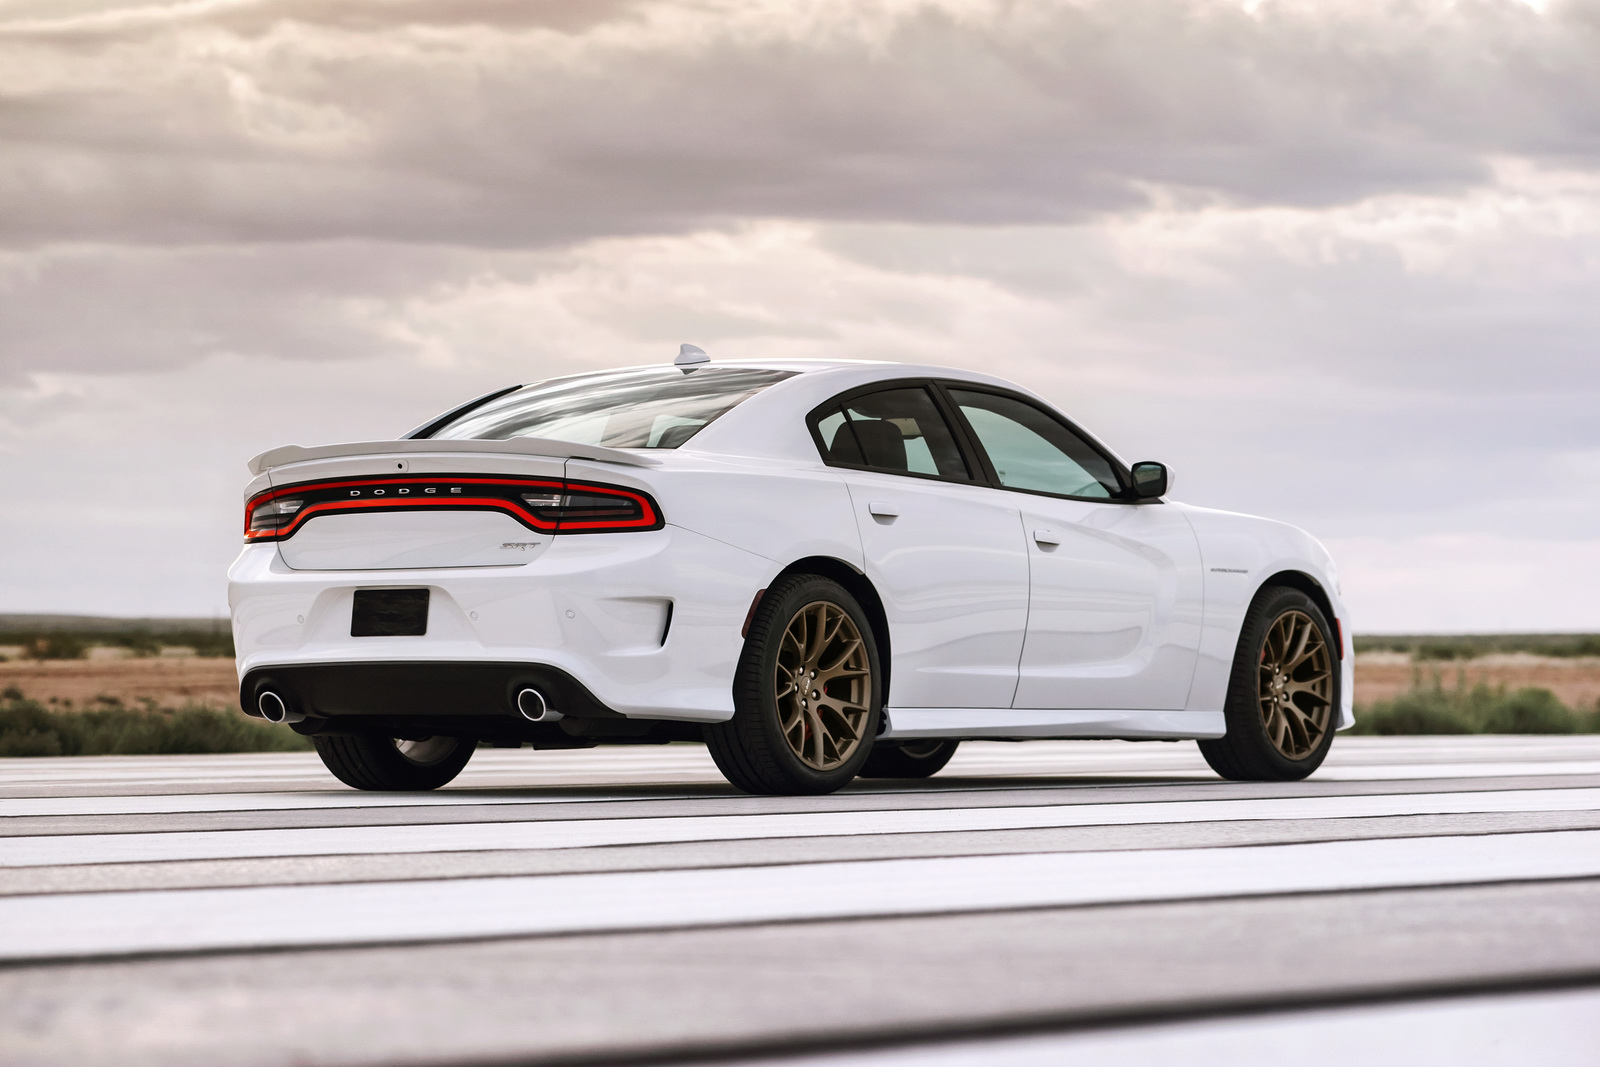 2017 Dodge Charger SRT Hellcat photo - 4